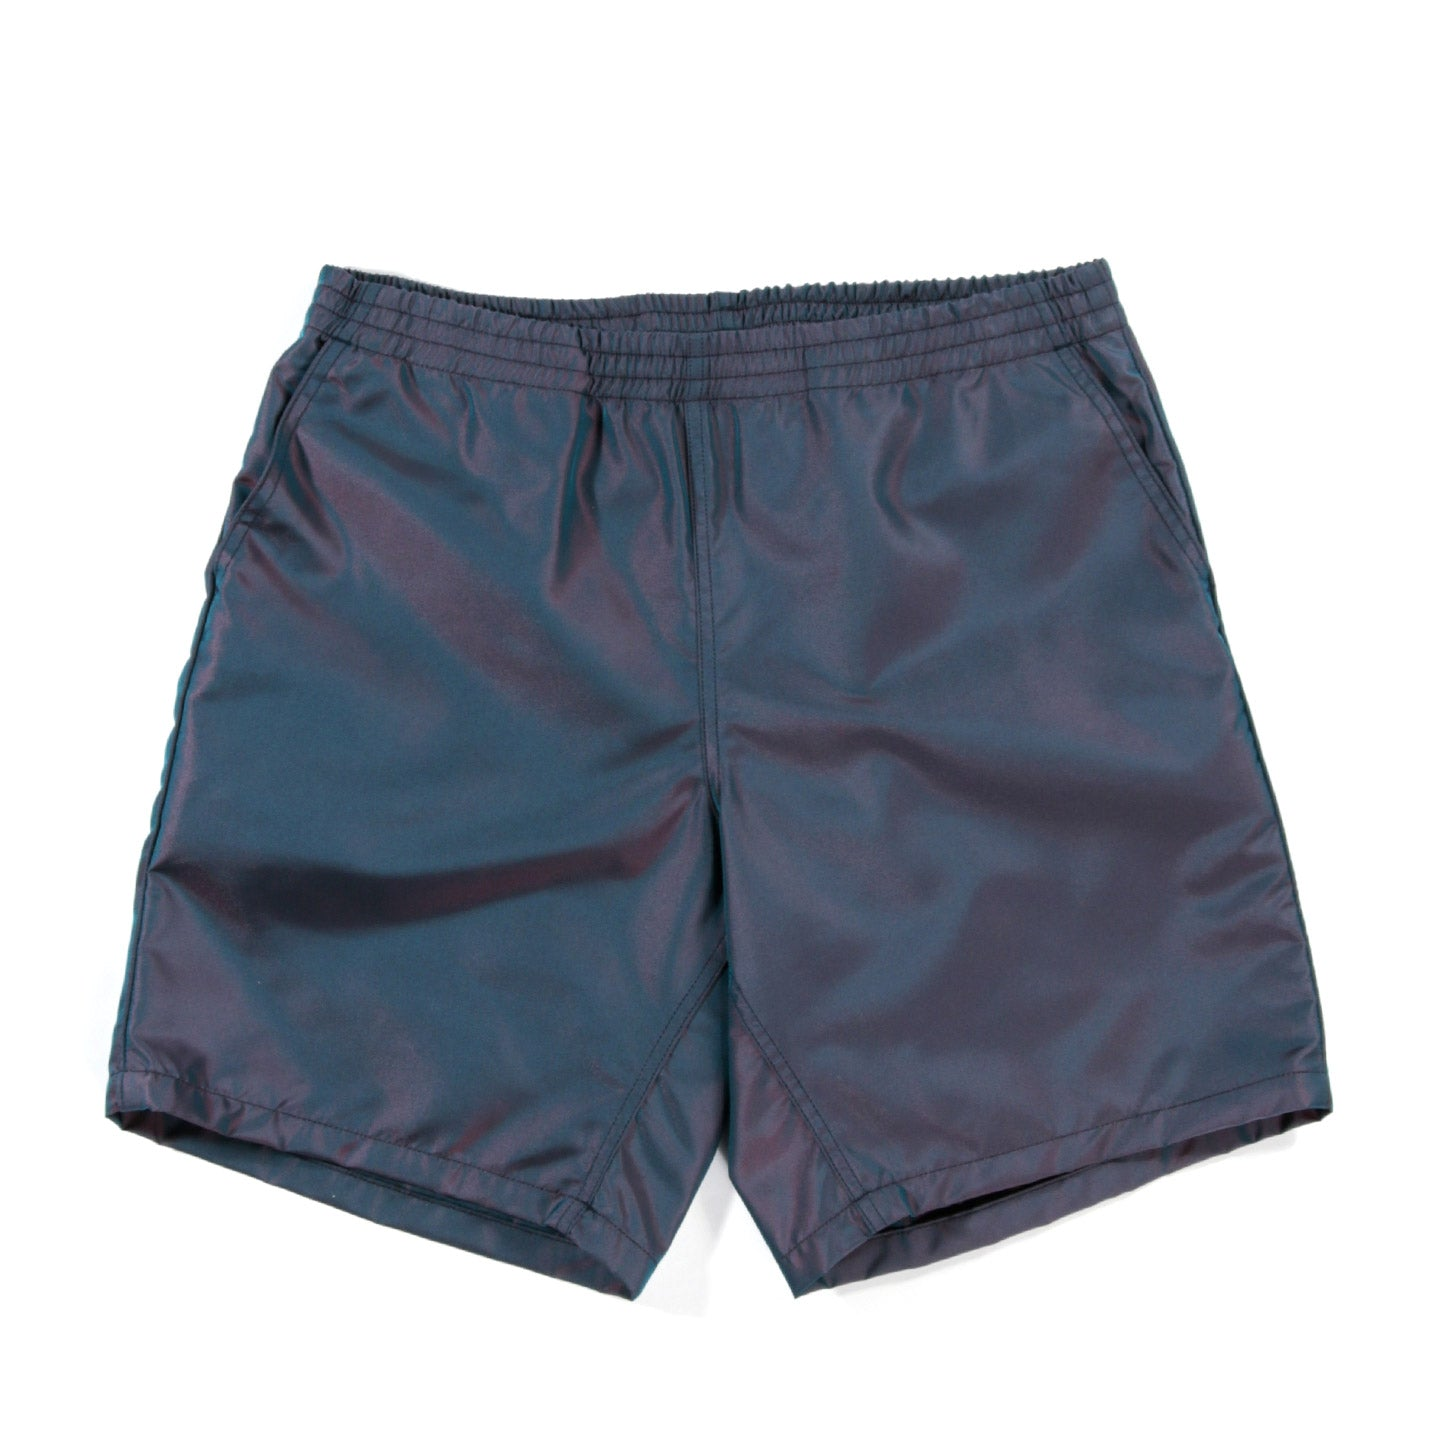 PAA WINDBREAKER SHORTS NAVY IRIDESCENT